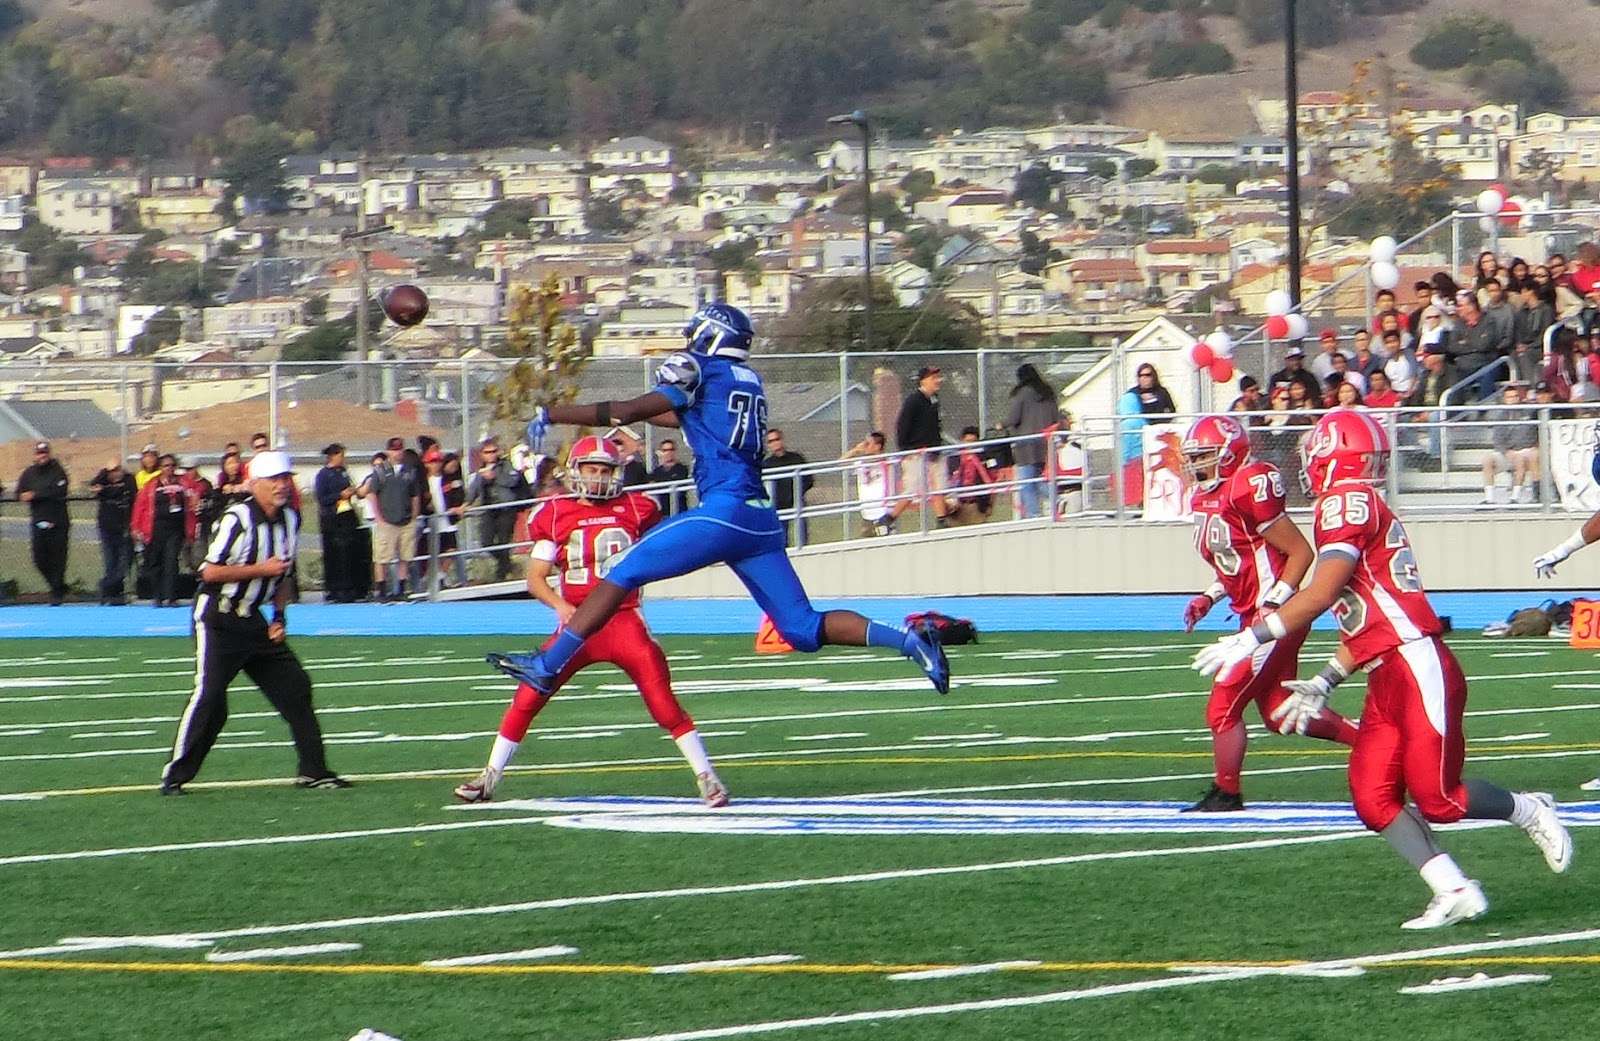 South City's Terrell Townsend knocks down a pass from EC's Andrew Pierotti late in the first half.